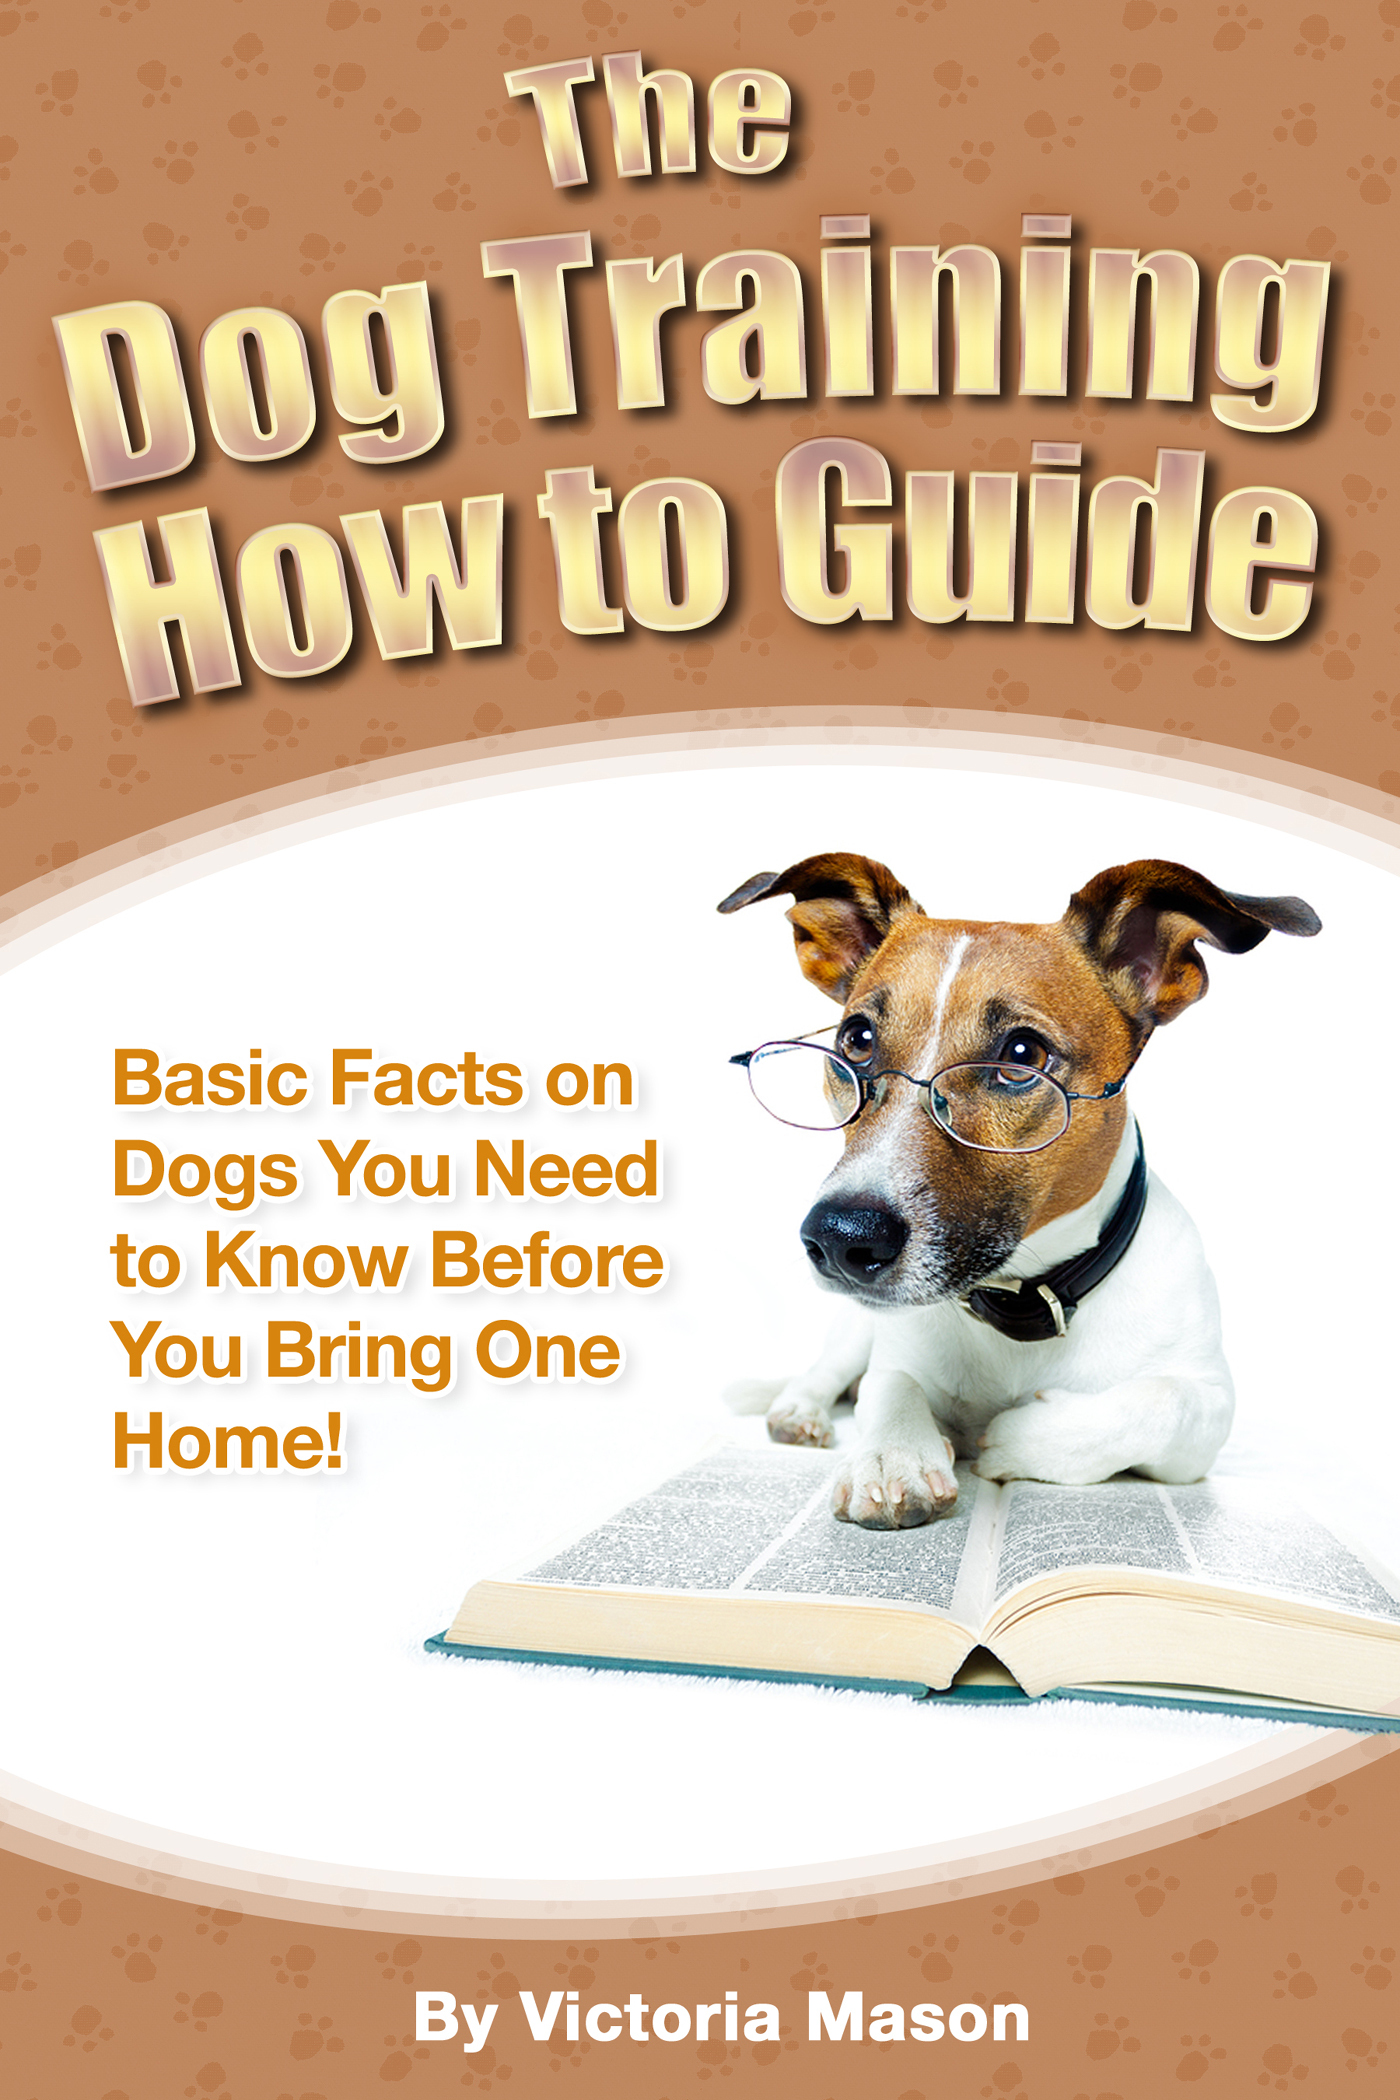 The Dog Training How to Guide: Basic Facts on Dogs You Need to Know Before You Bring One Home! By: Victoria Mason